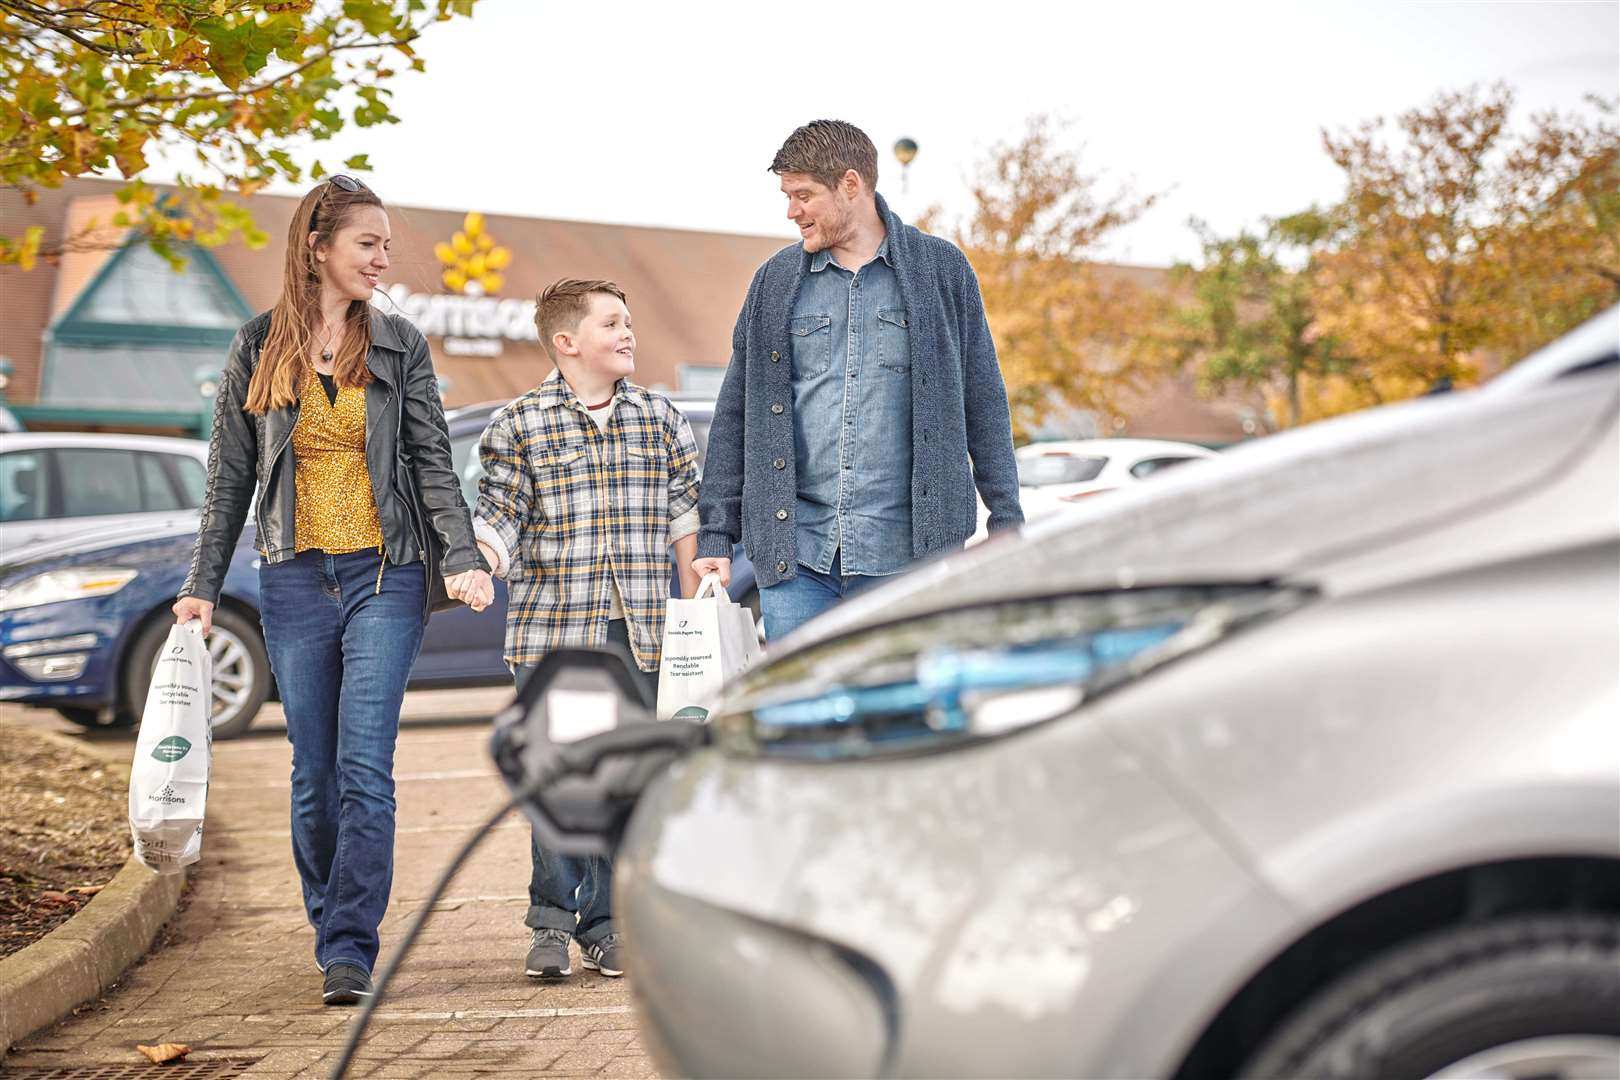 Morrisons says demand is growing for electric vehicle drivers to be able to charge while carrying out day-to-day activities